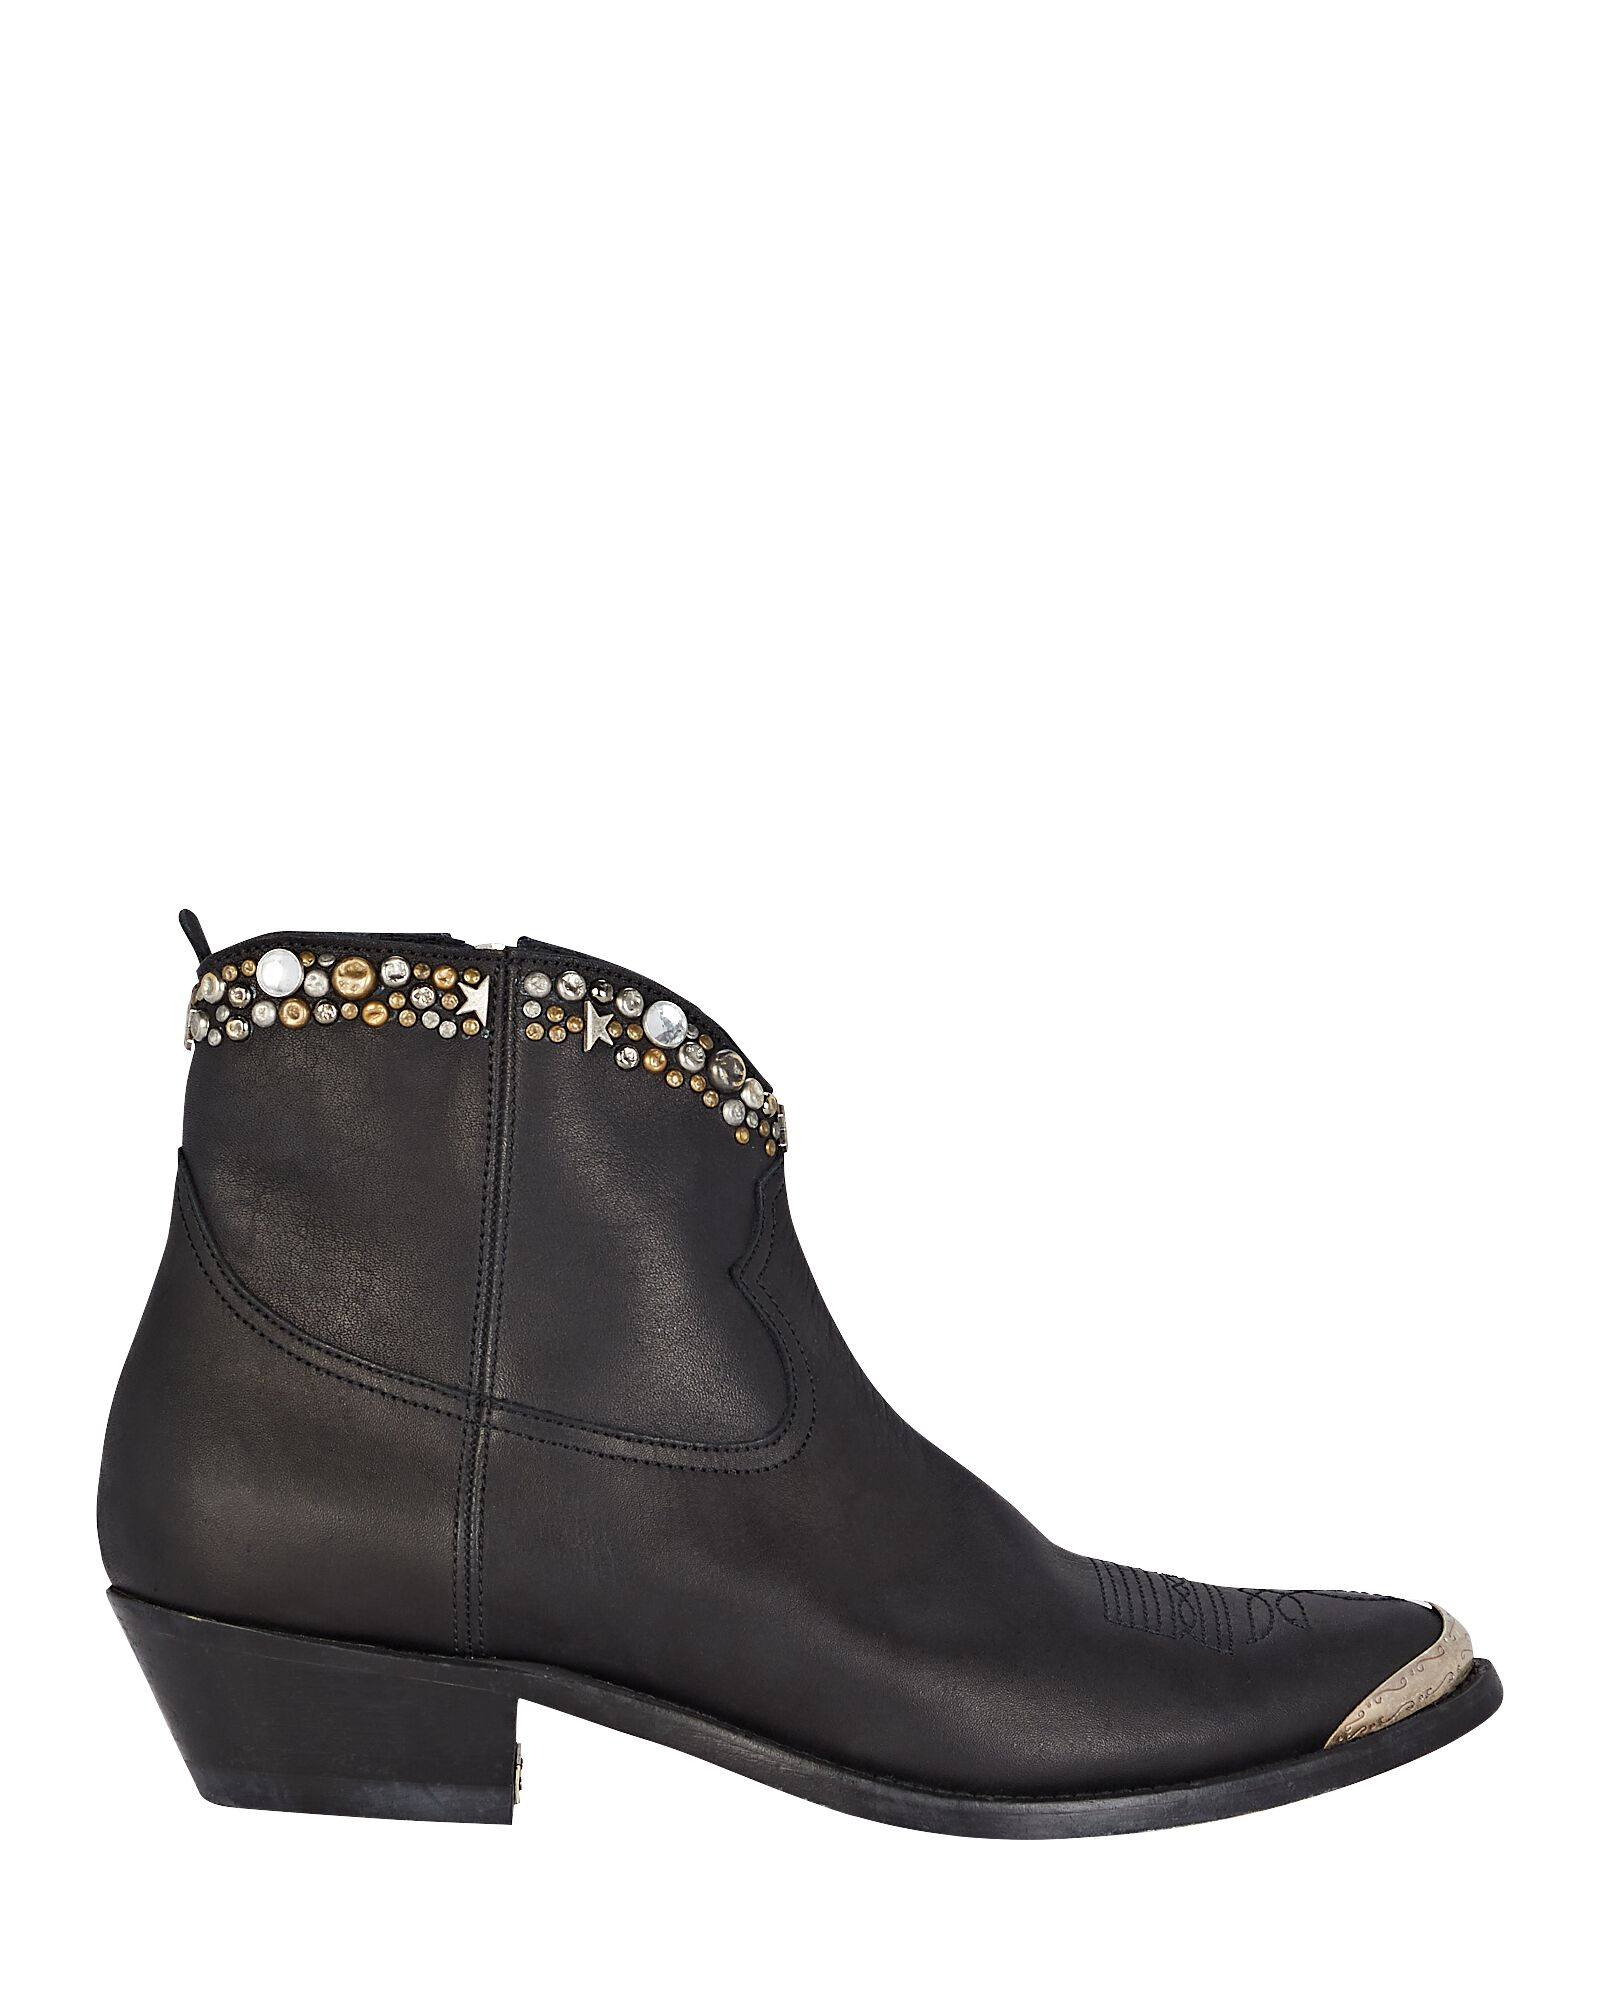 Young Leather Western Ankle Boots, BLACK, hi-res